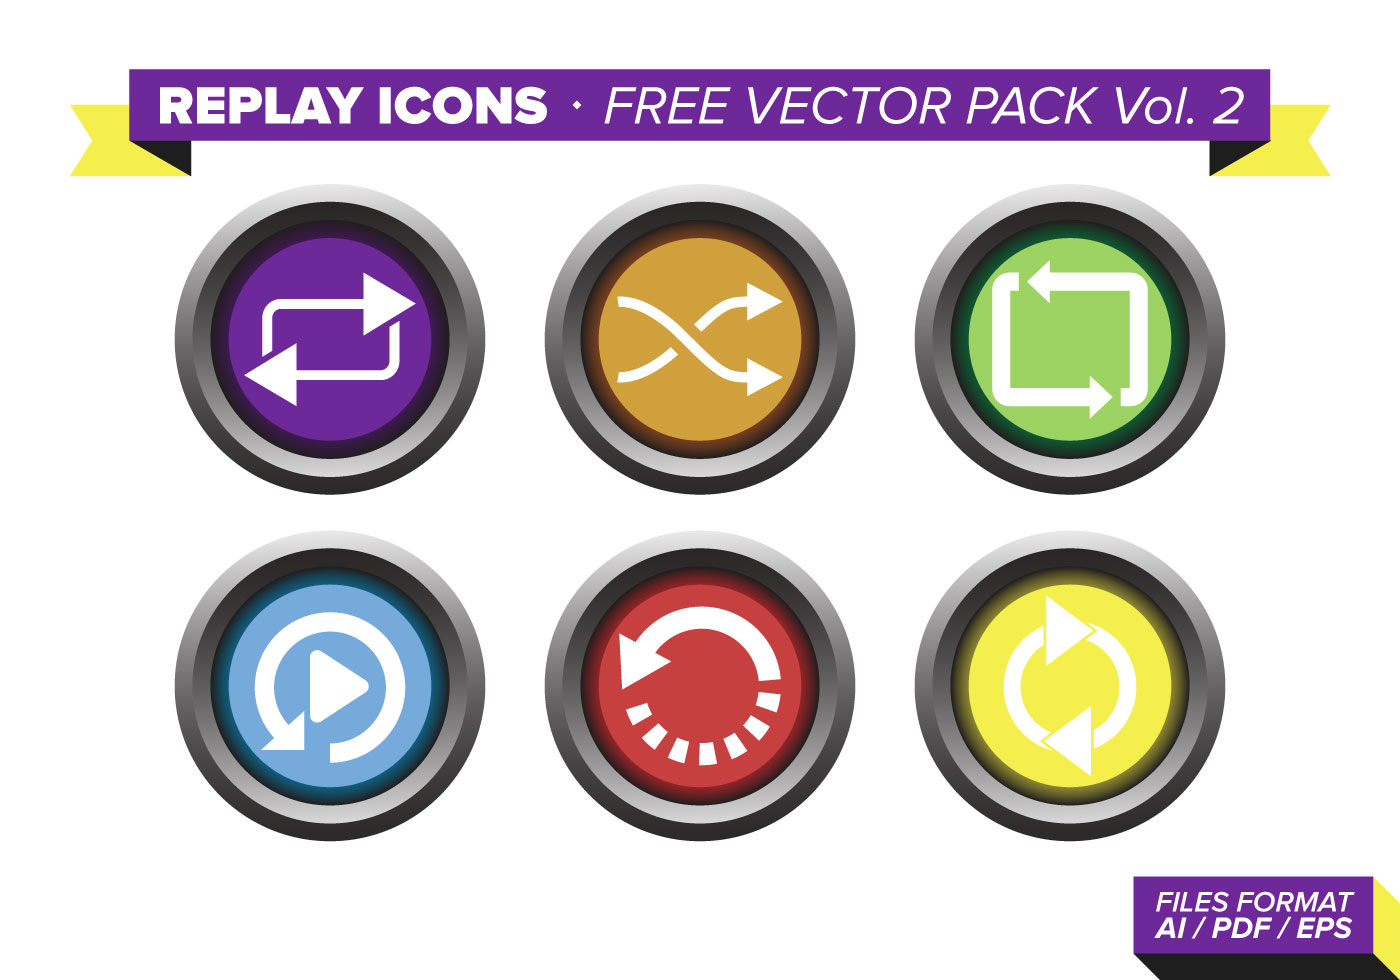 Replay Icons Free Vect...